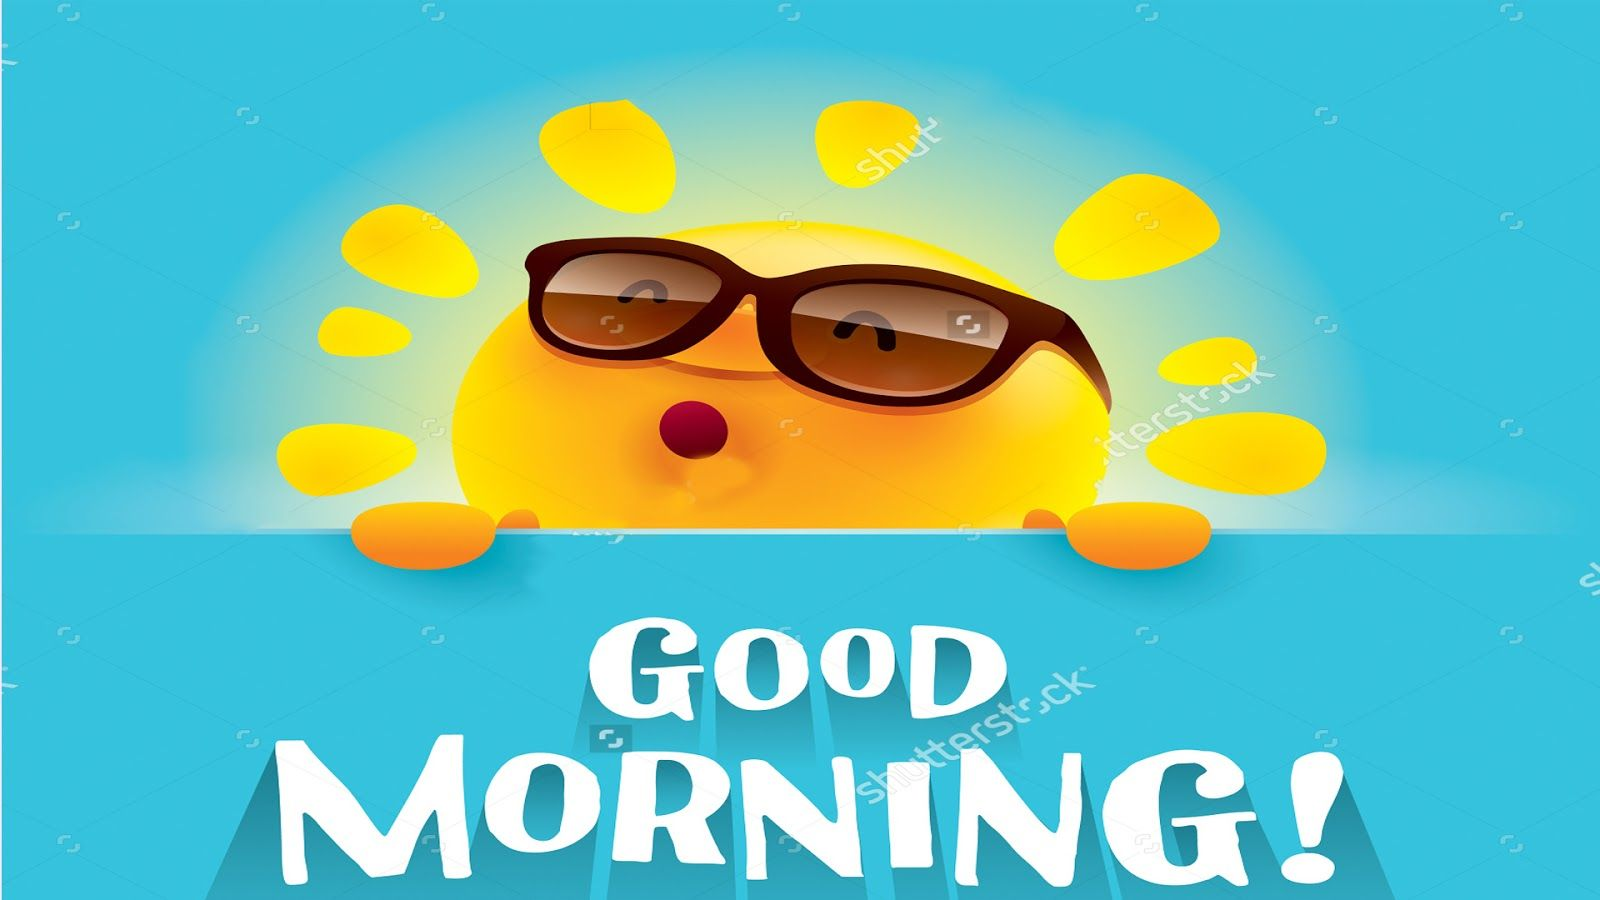 Good Morning Wallpapers Hd Download Free 1080p Good Morning Hd